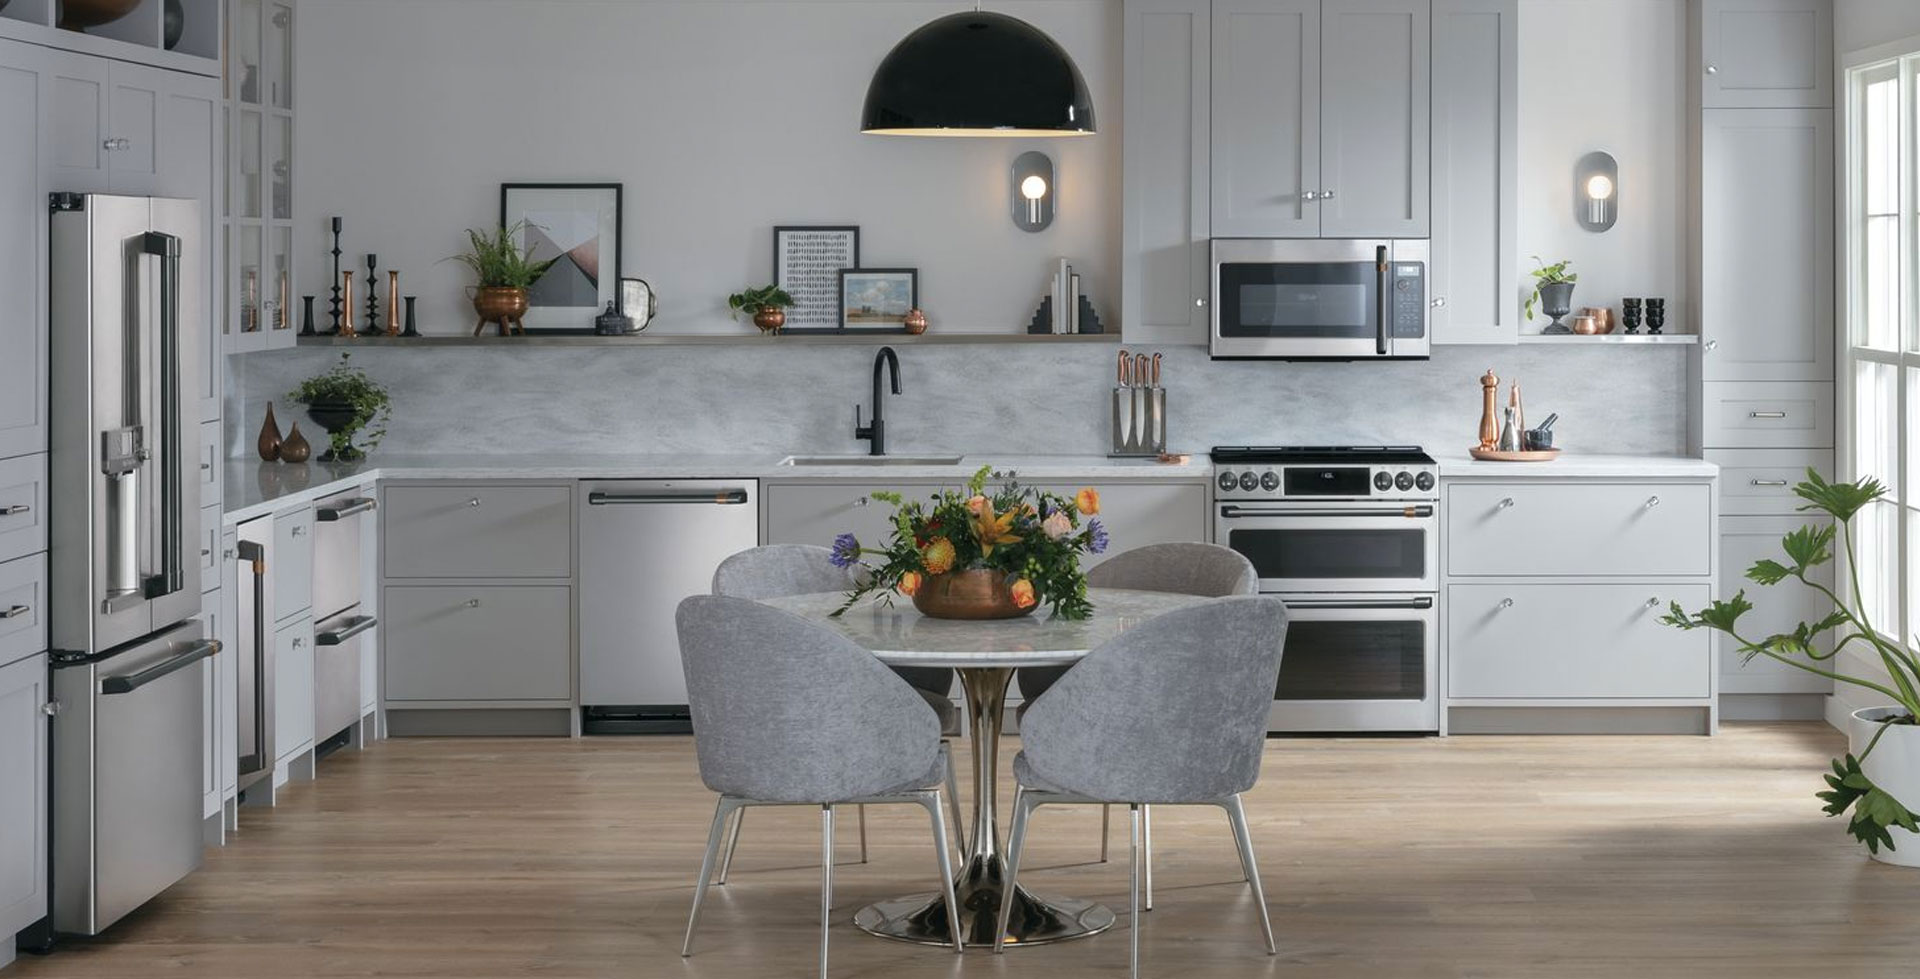 Stainless Steel Kitchen Suite With Grey Cabinets Global Decor Centre Ltd